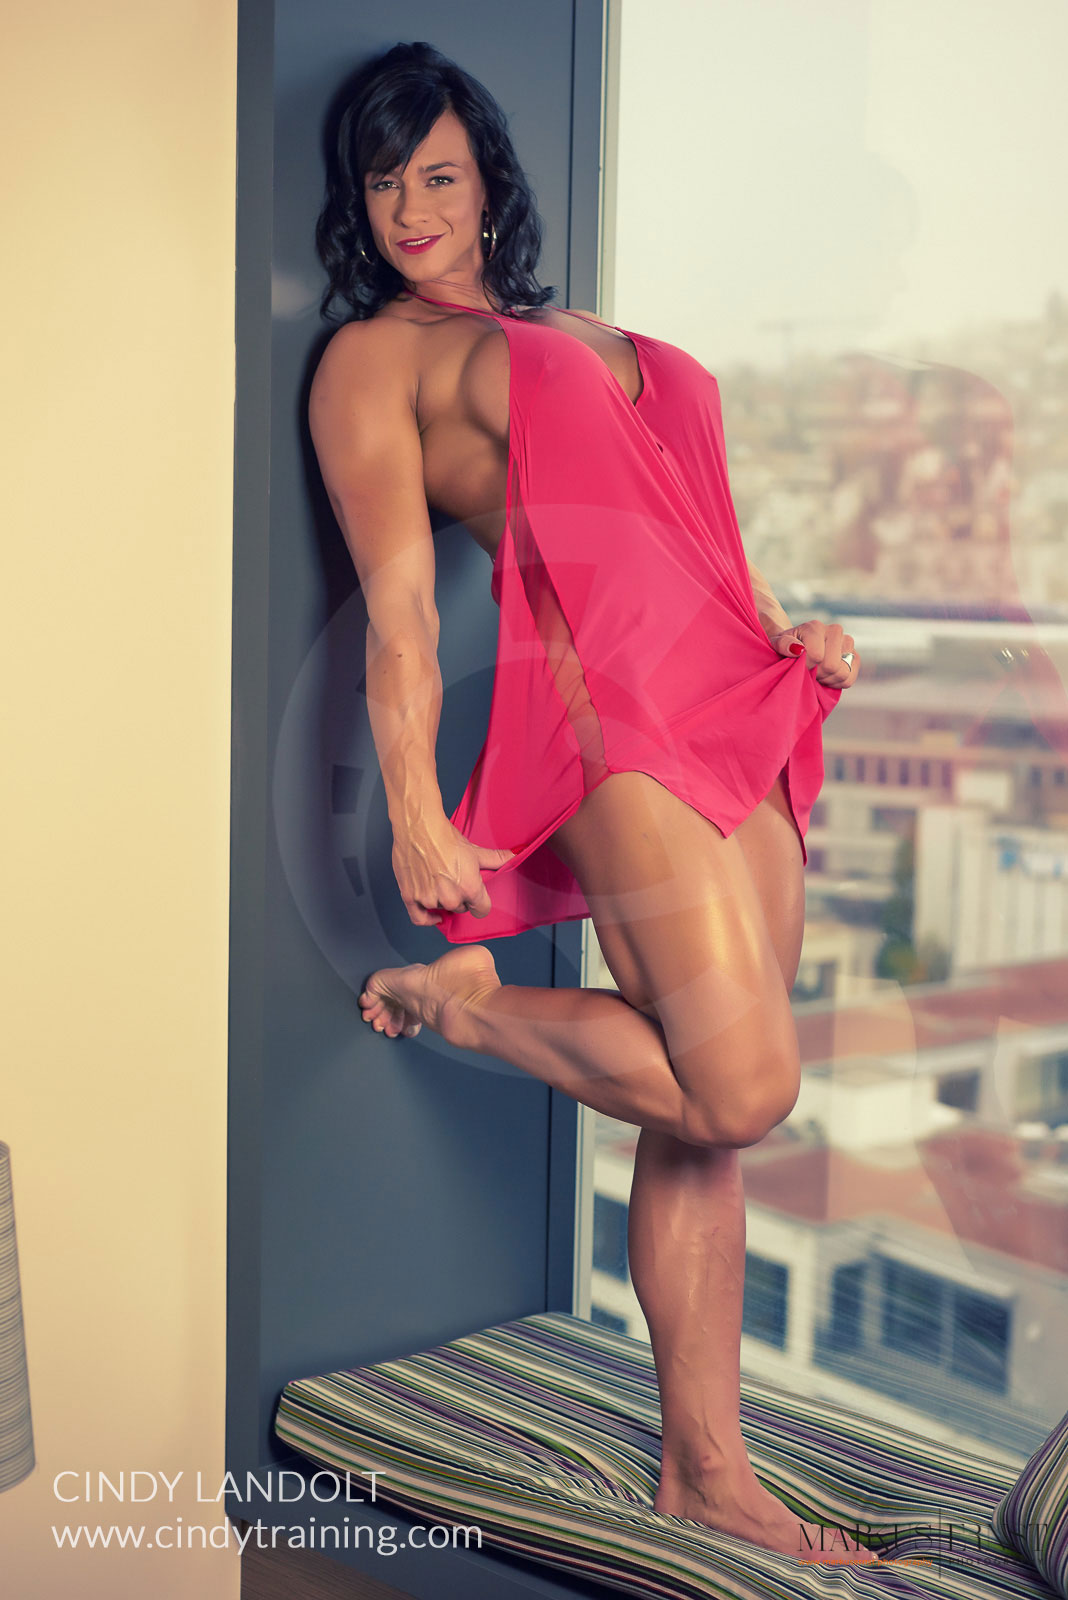 Cindy Landolt Red Body Builders Pics With White